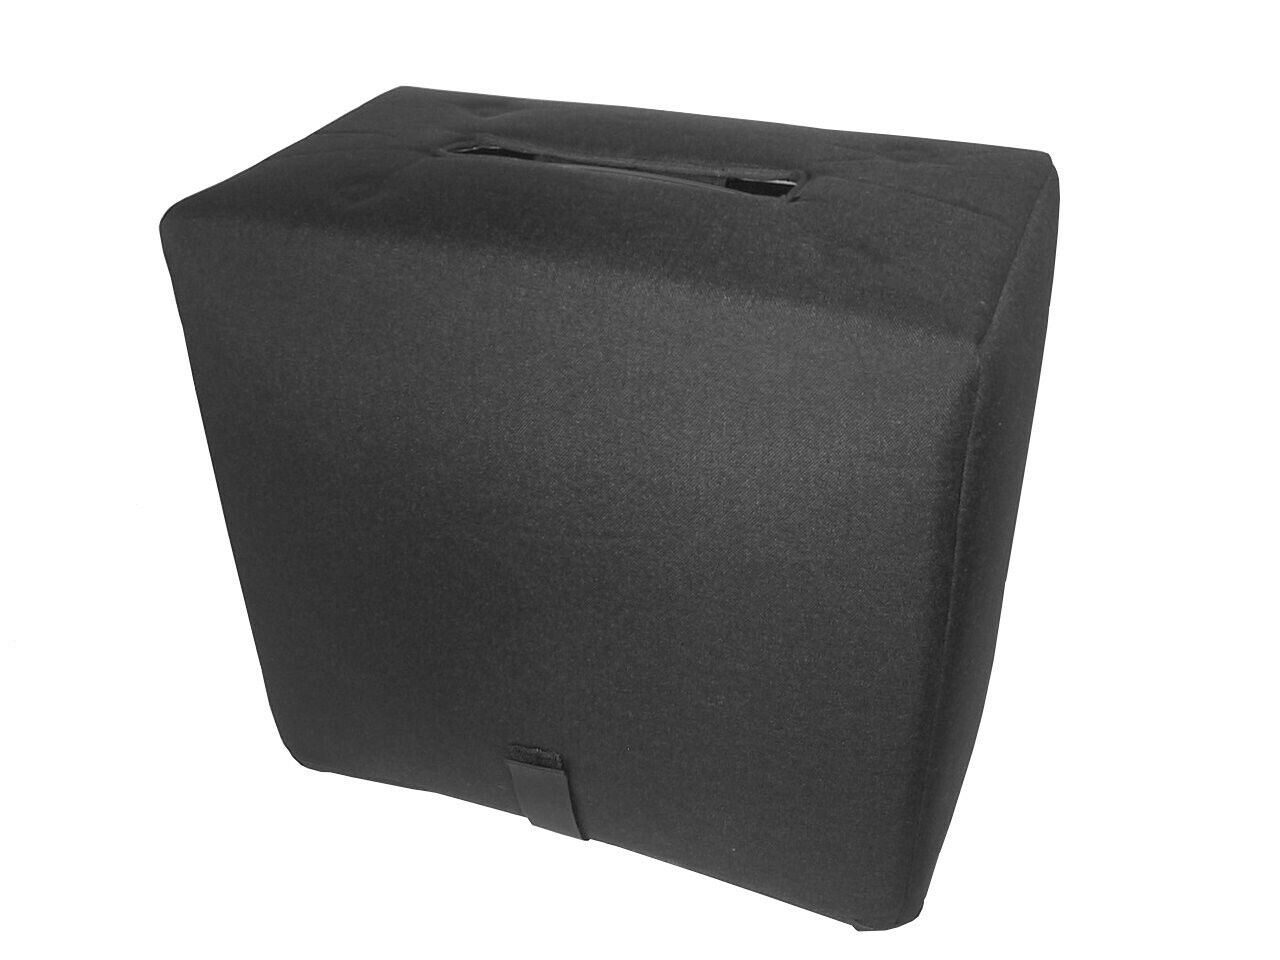 Bad Cat Classic Deluxe 20R 1x12 Combo Cover (20W x 17.75H x 10.25D) (badc069p)